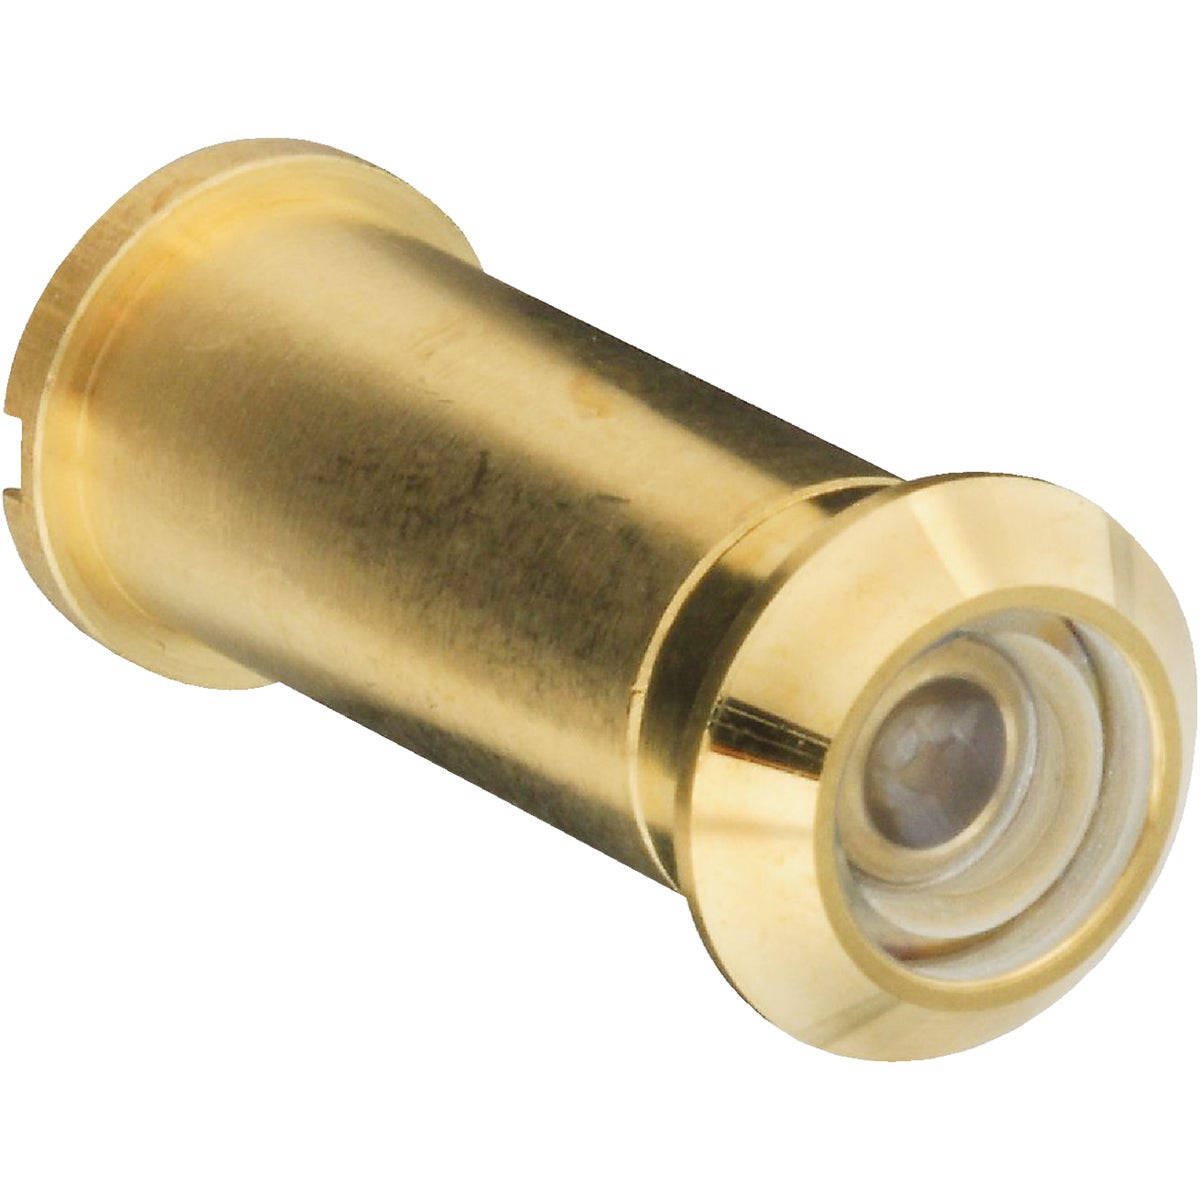 SOLID BRASS DOOR VIEWER - N158907 by National Mfg Co